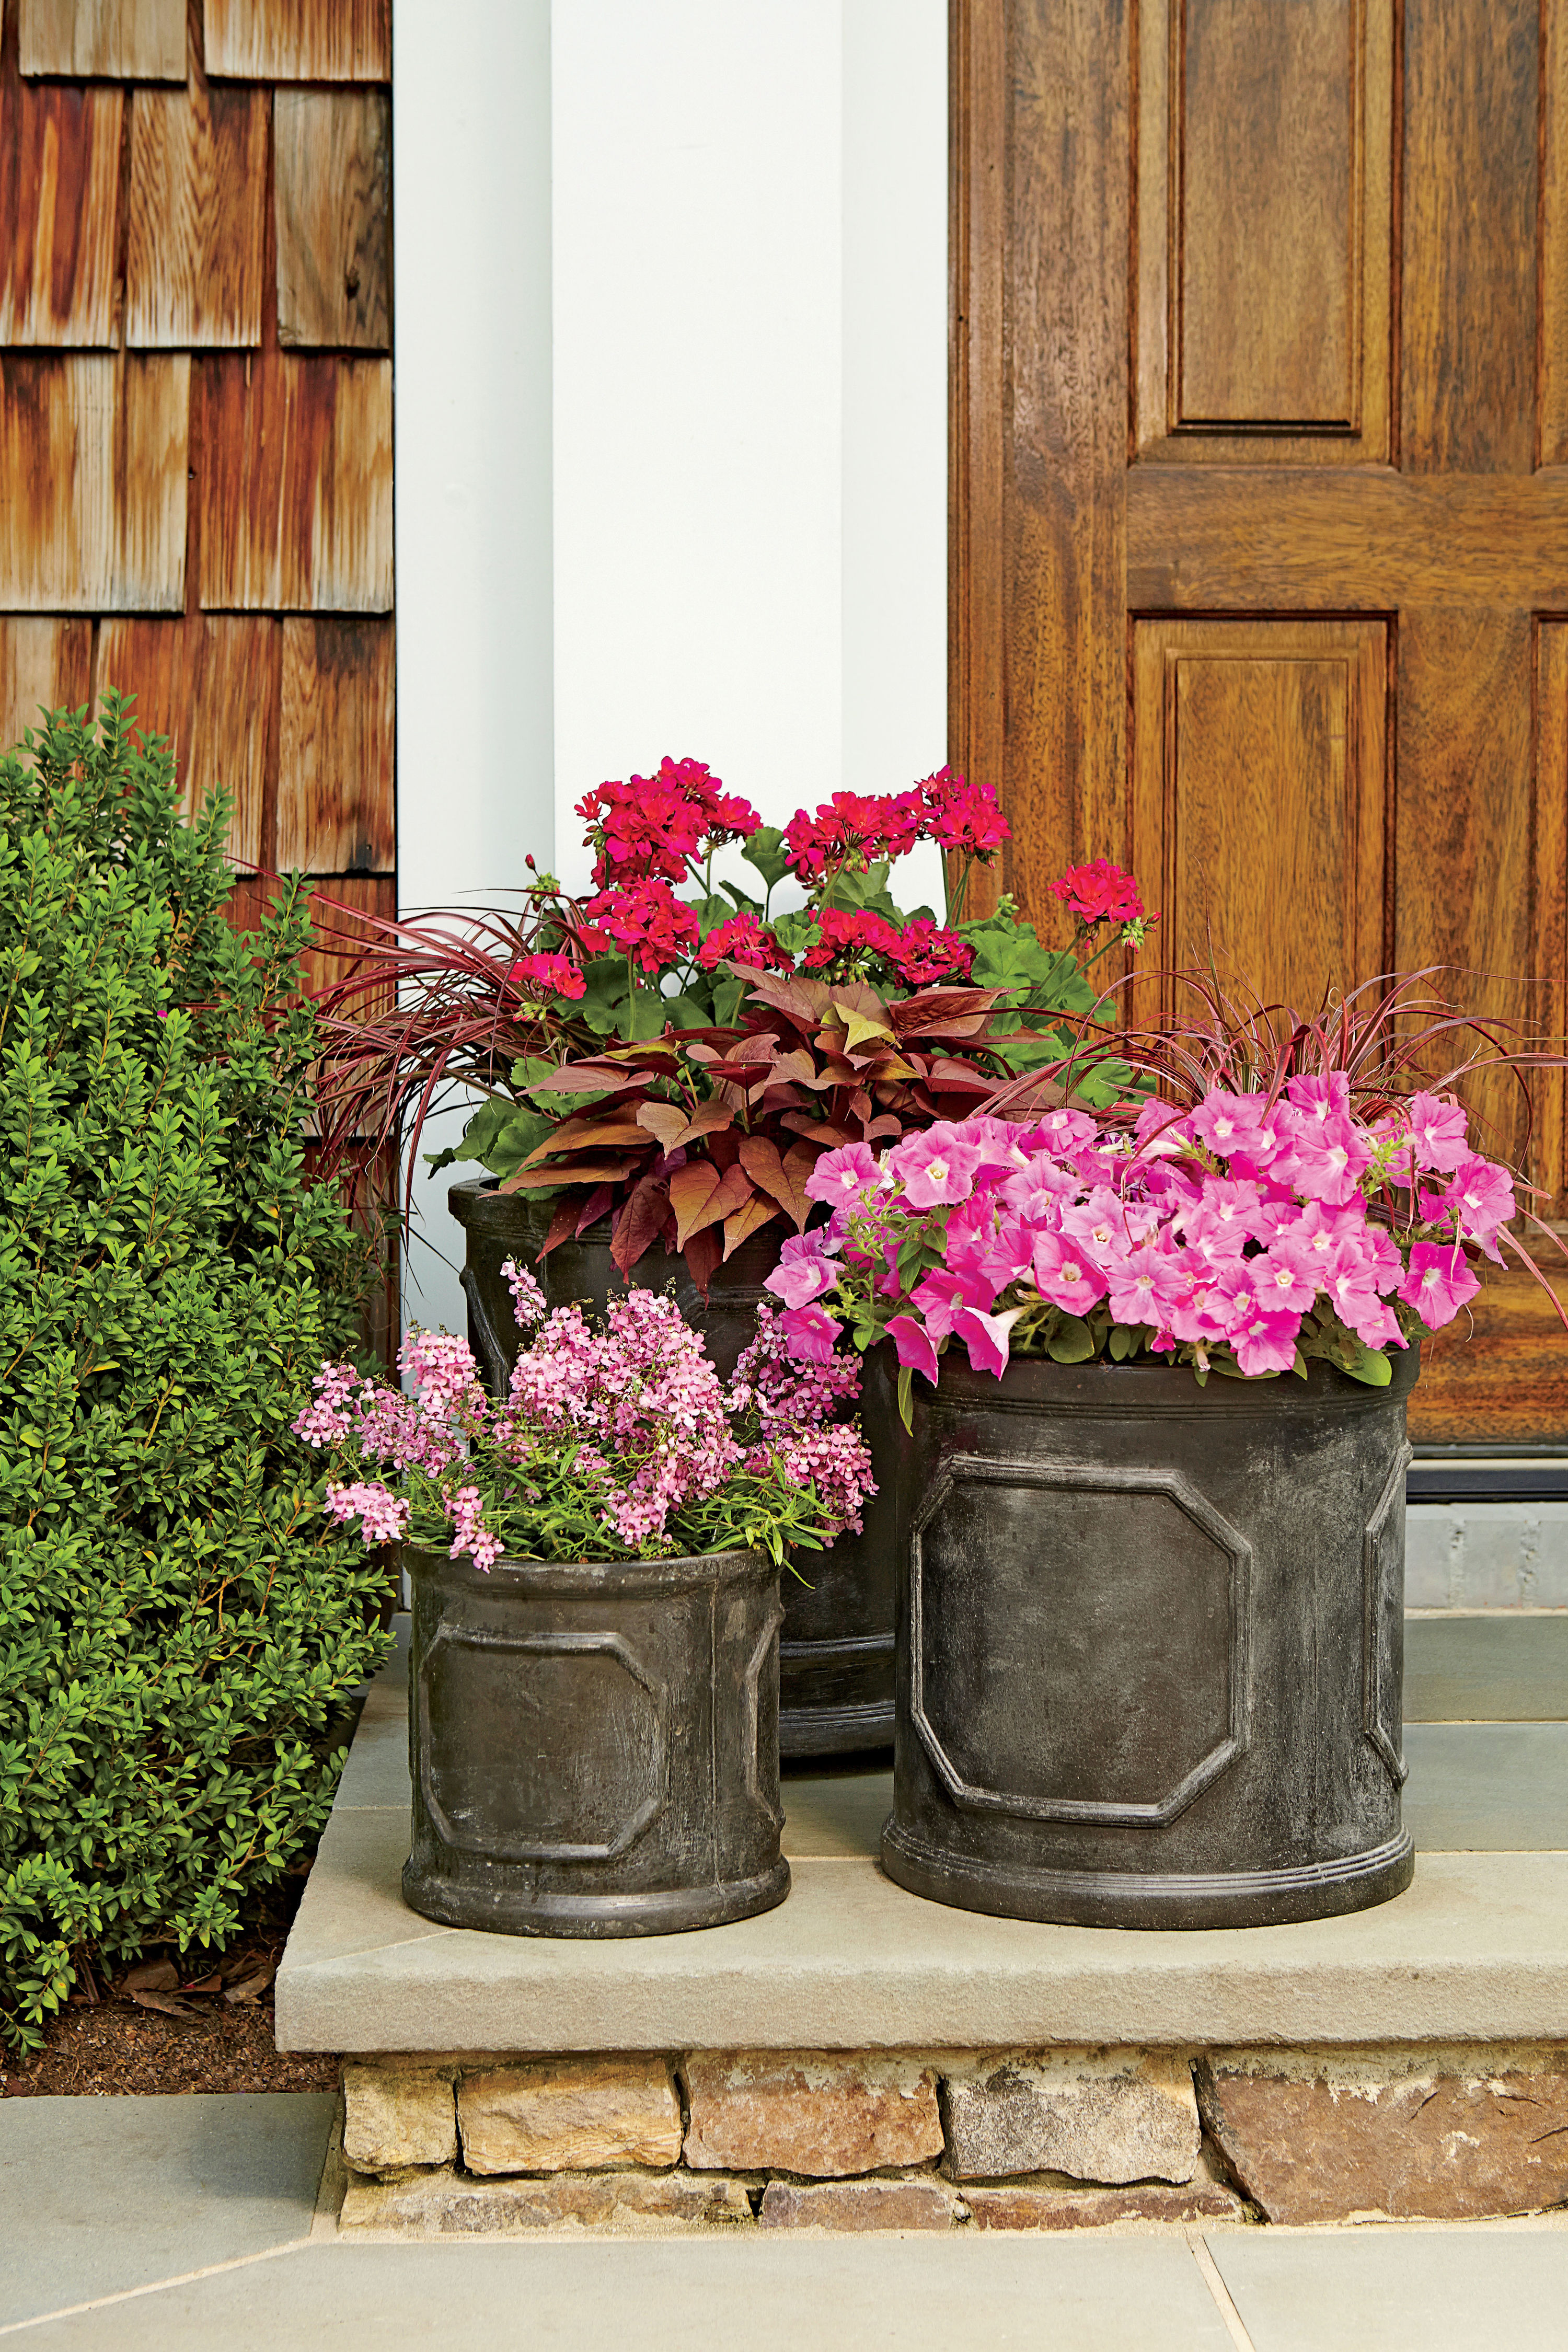 planter plant porch planters pot a chic flower design ideas front pictures door for full potted very idea coloring entrance doors free home excellent pots image welcoming